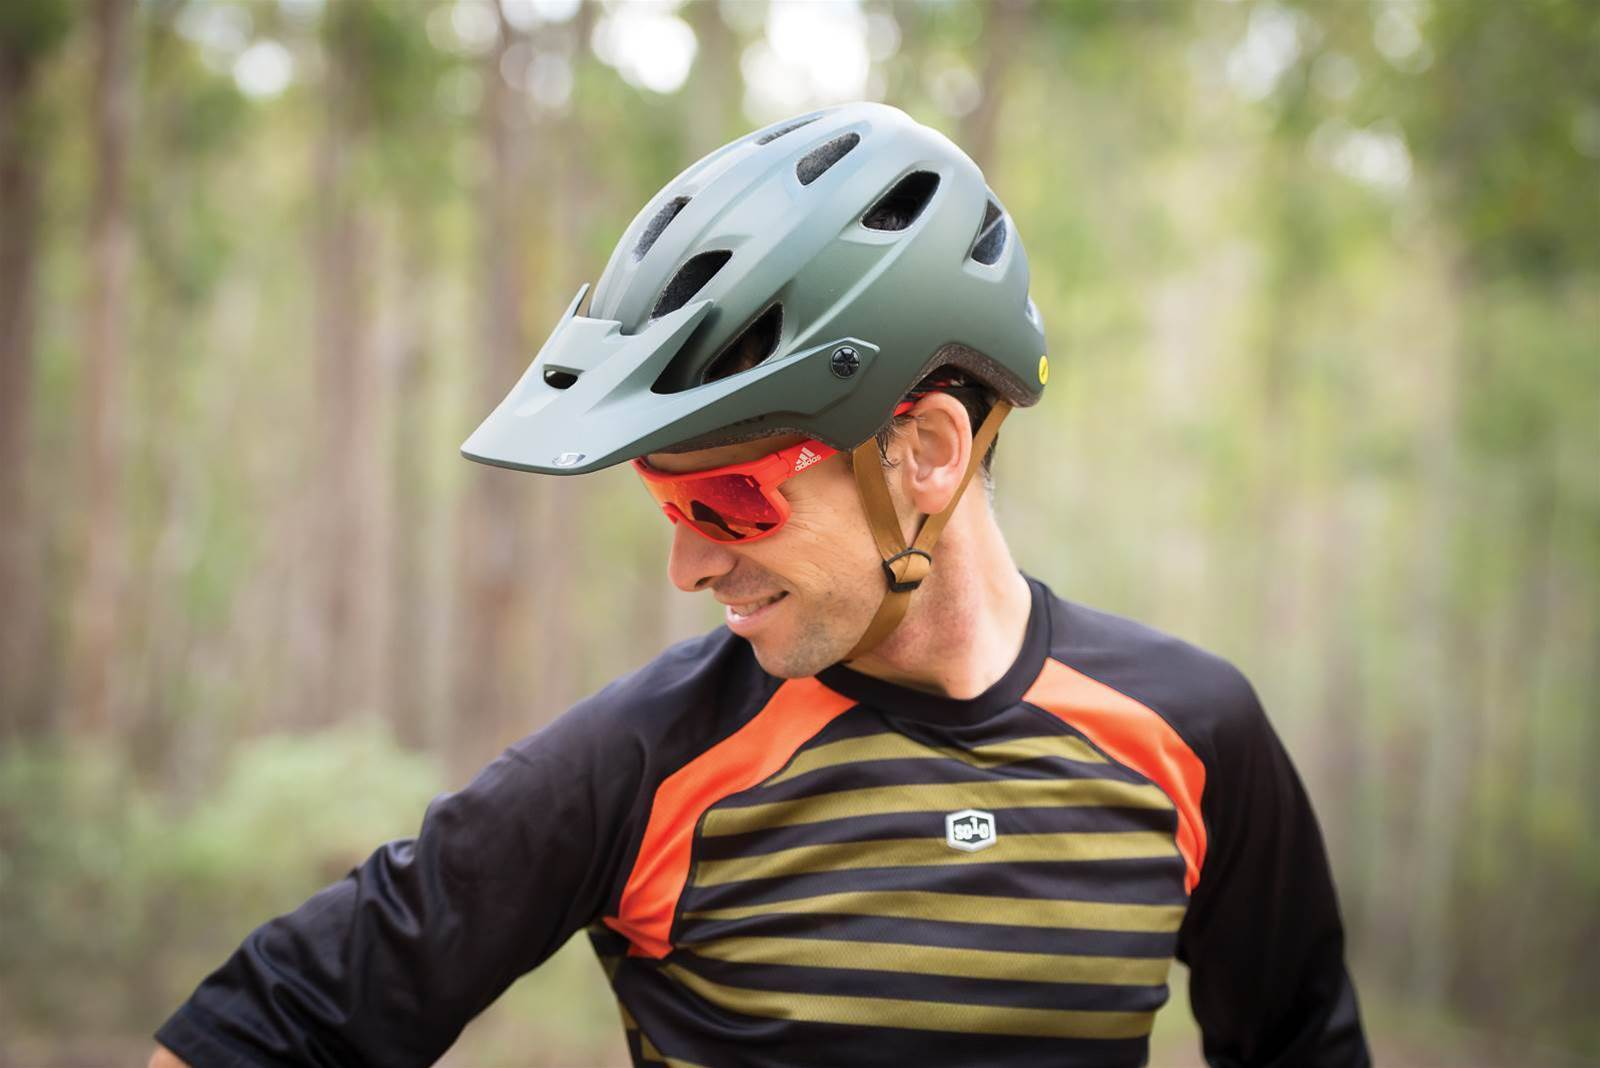 TESTED: Giro chronicle MIPS helmet